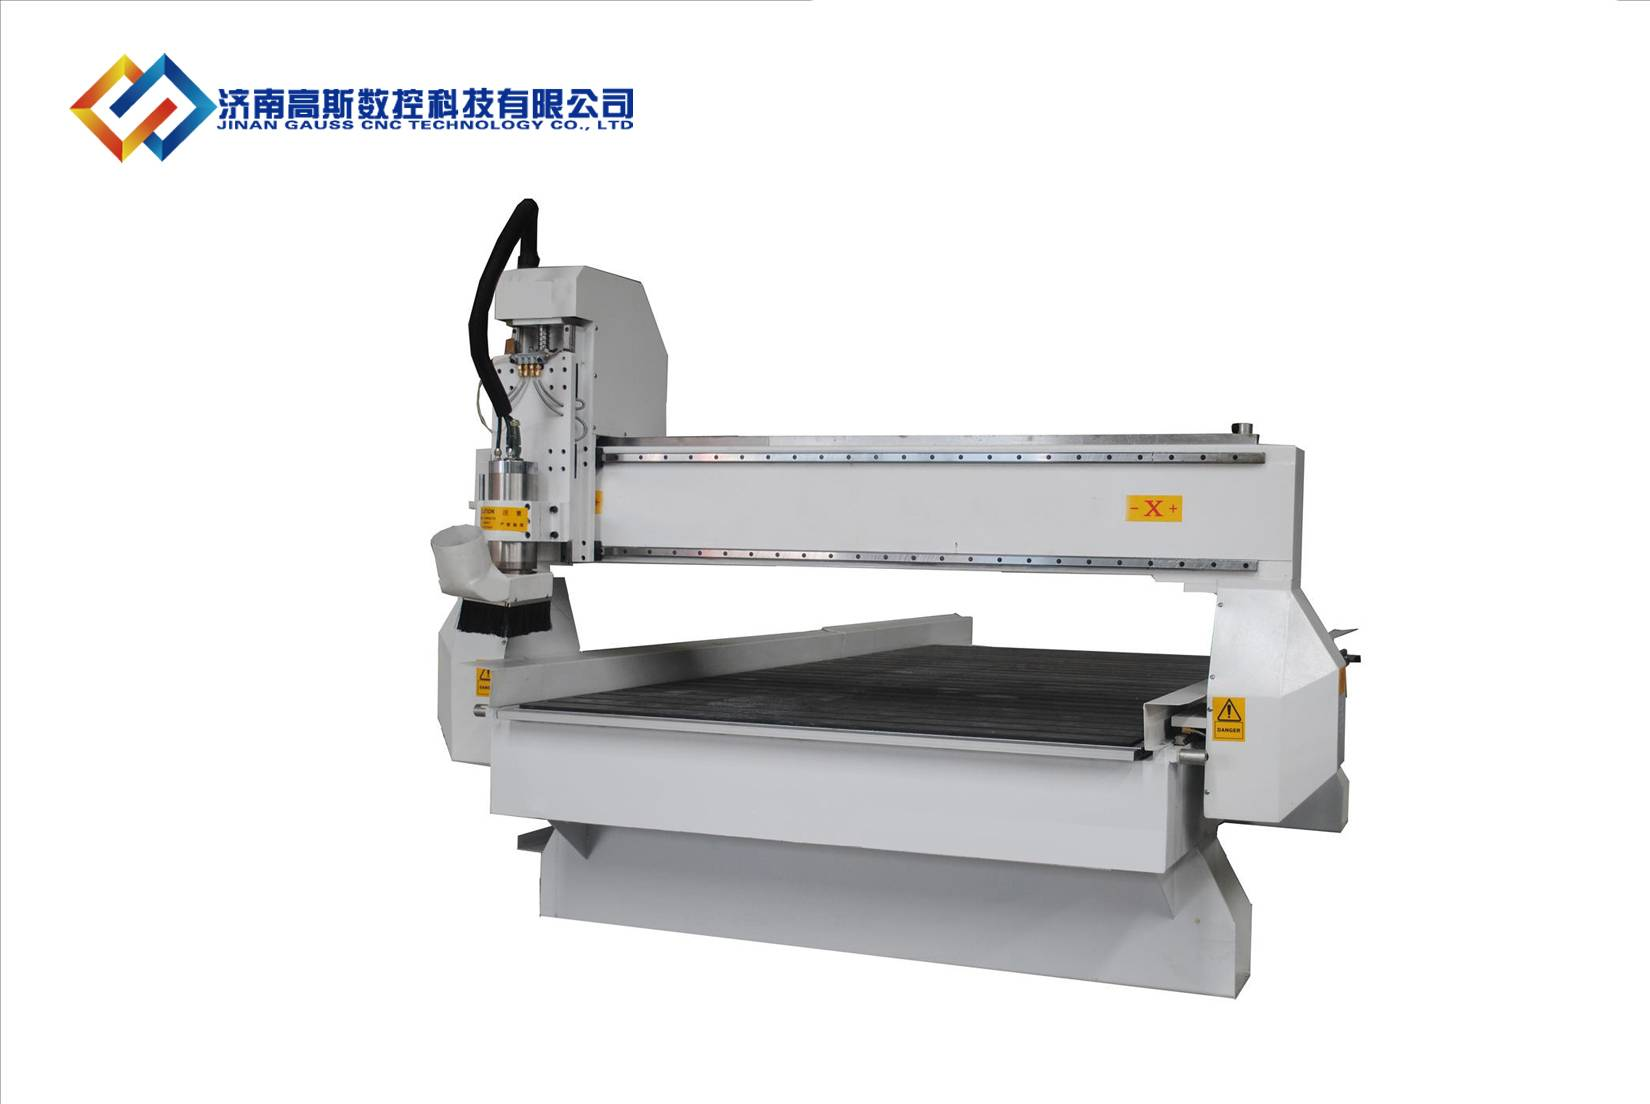 GS Wood CNC Router Machine GS-1325